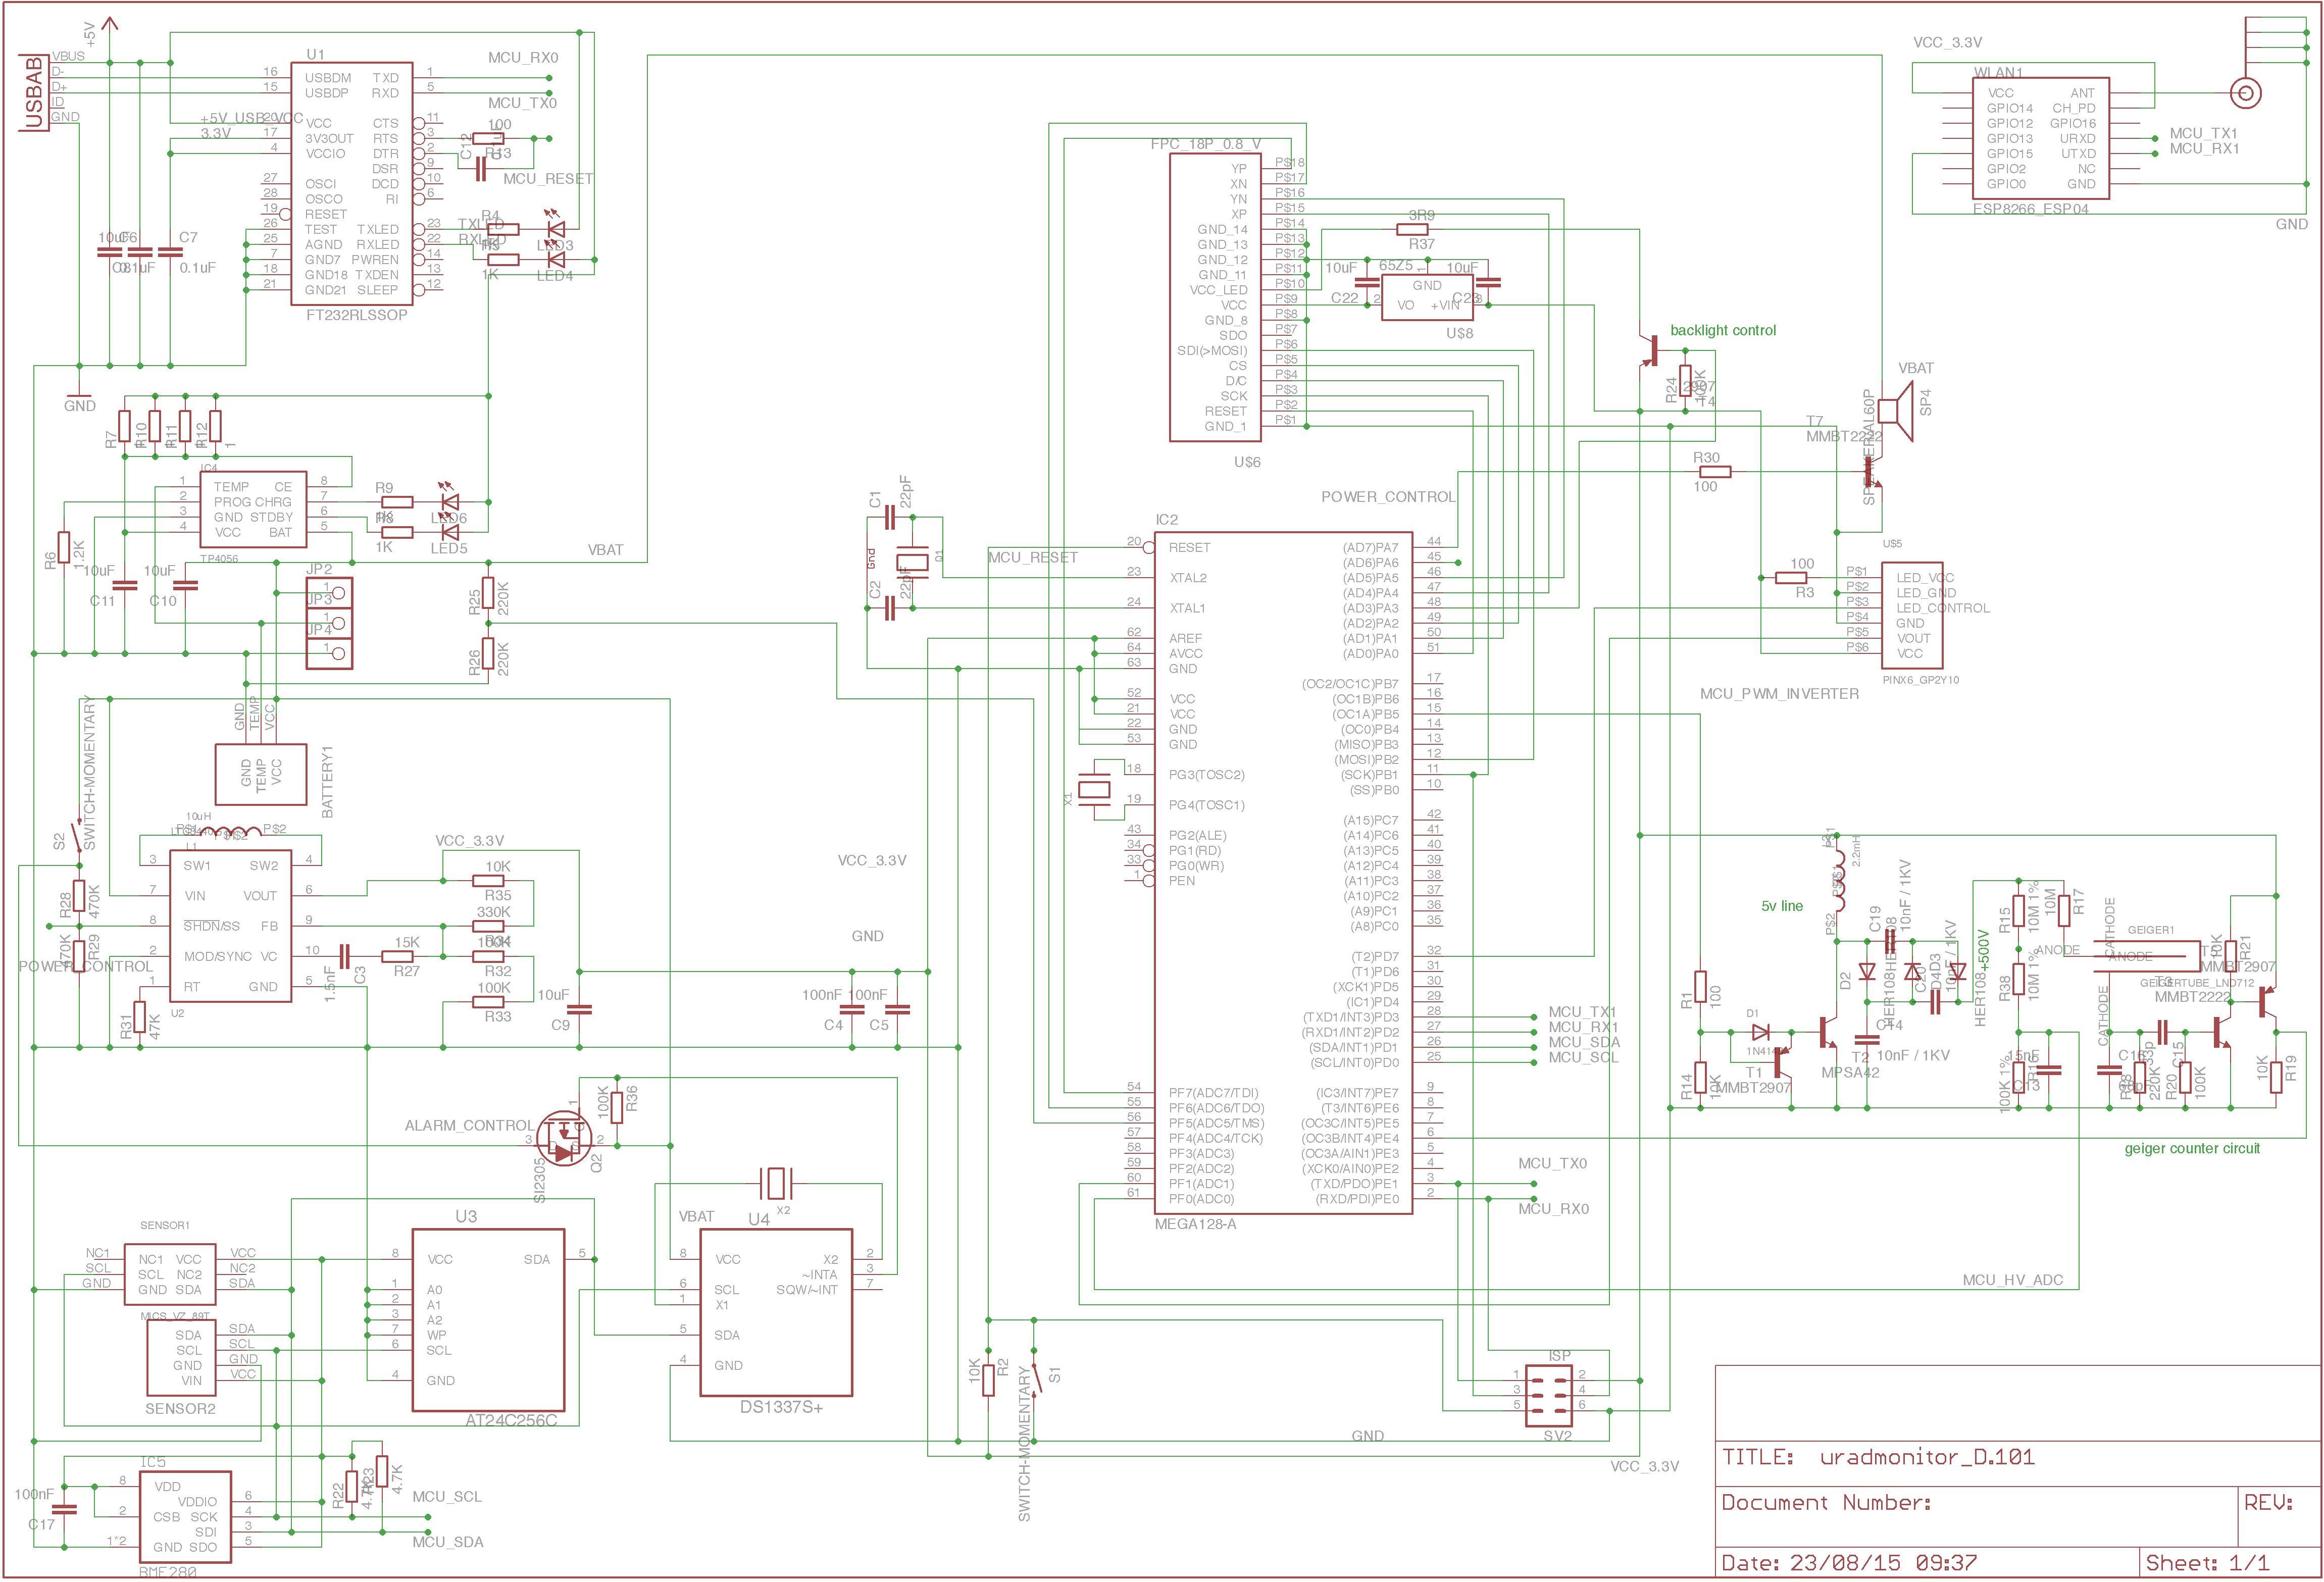 Post Beta Hardware Iteration Details Geiger Counter Circuit For Now I Need To Order The Pcbs And Few Missing Sensors Components New Diagram Shows Involved